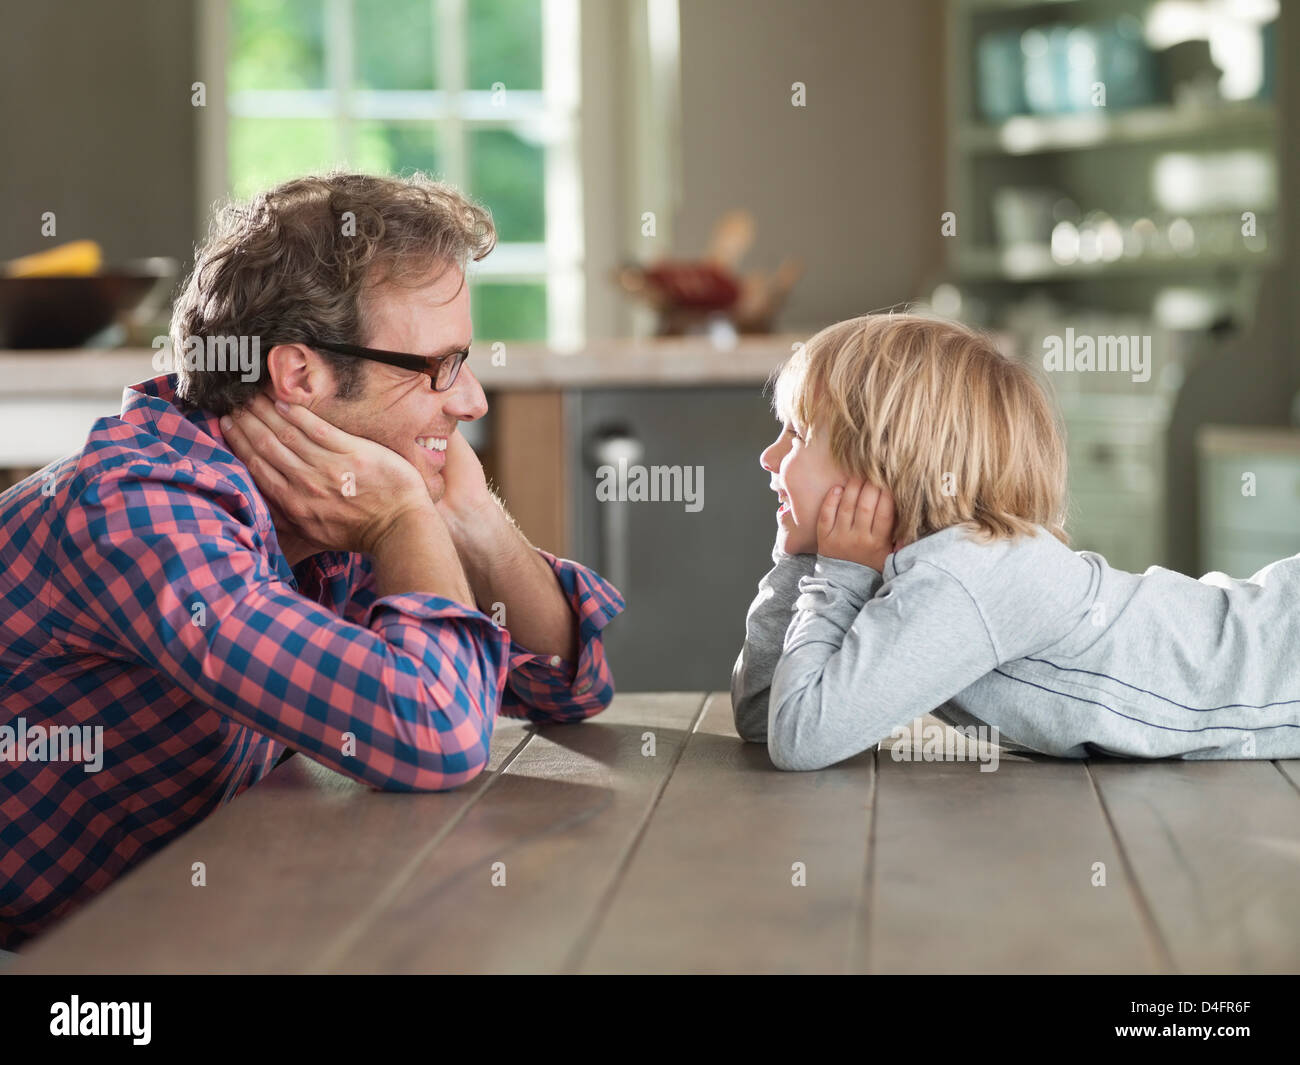 Father and son admiring each other at table - Stock Image